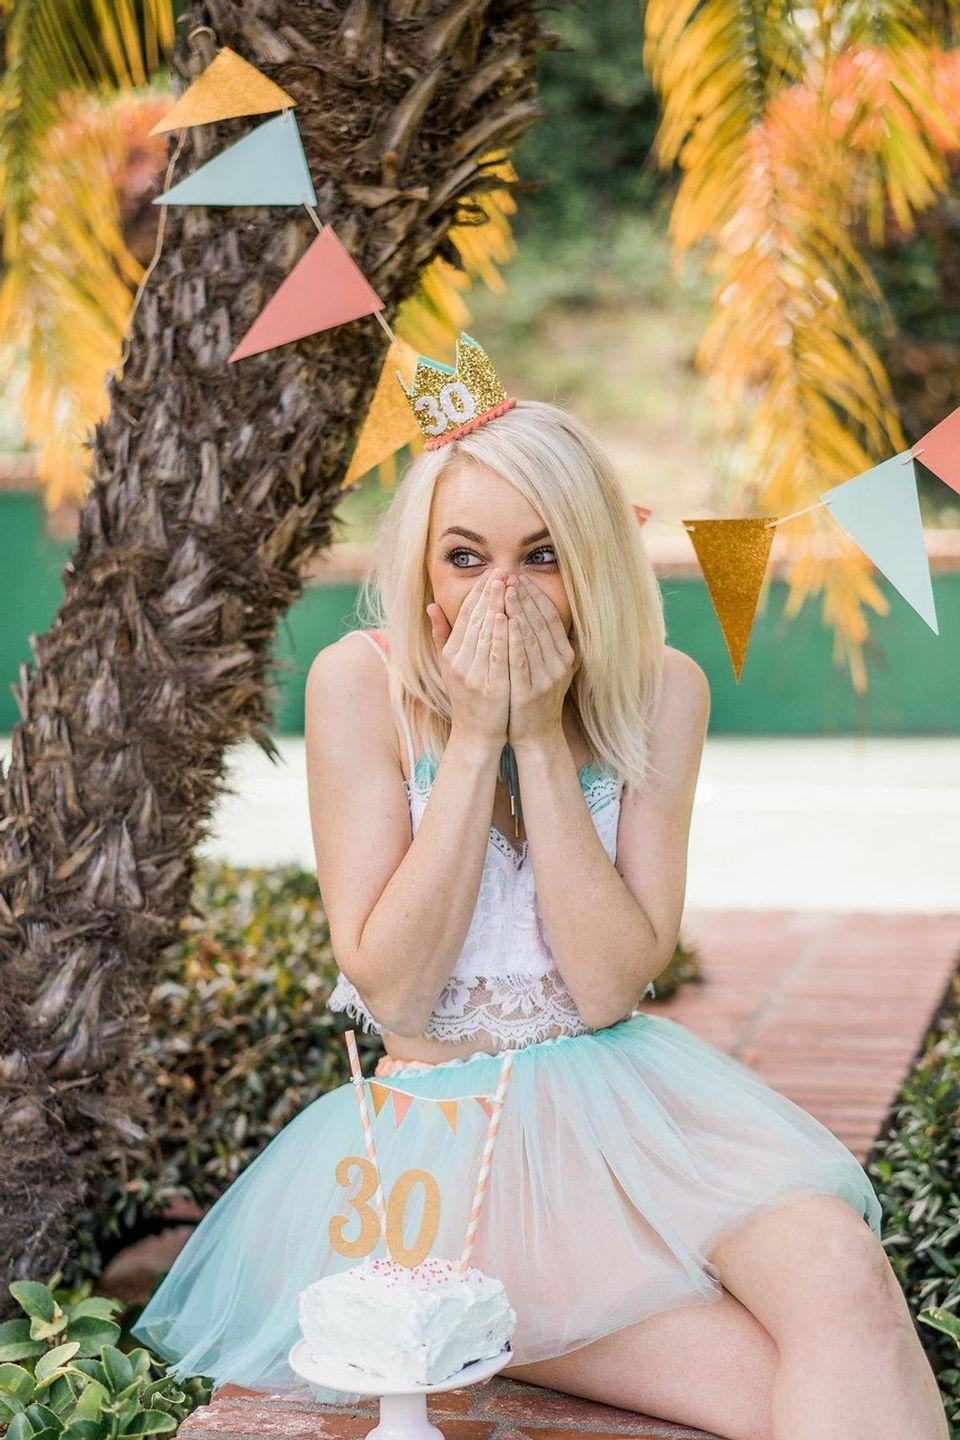 """<p>In our opinion, you're <em>never </em>too old to wear a birthday crown (or, do anything, really). Whether it's for your own birthday or your toddler's virtual party, we say the more sparkle, the better.</p><p><a class=""""link rapid-noclick-resp"""" href=""""https://go.redirectingat.com?id=74968X1596630&url=https%3A%2F%2Fwww.etsy.com%2Flisting%2F552888564%2F30th-birthday-for-her-adult-30-birthday&sref=https%3A%2F%2Fwww.oprahmag.com%2Flife%2Fg32466287%2Fvirtual-birthday-party-ideas%2F"""" rel=""""nofollow noopener"""" target=""""_blank"""" data-ylk=""""slk:SHOP BIRTHDAY CROWNS"""">SHOP BIRTHDAY CROWNS</a></p>"""